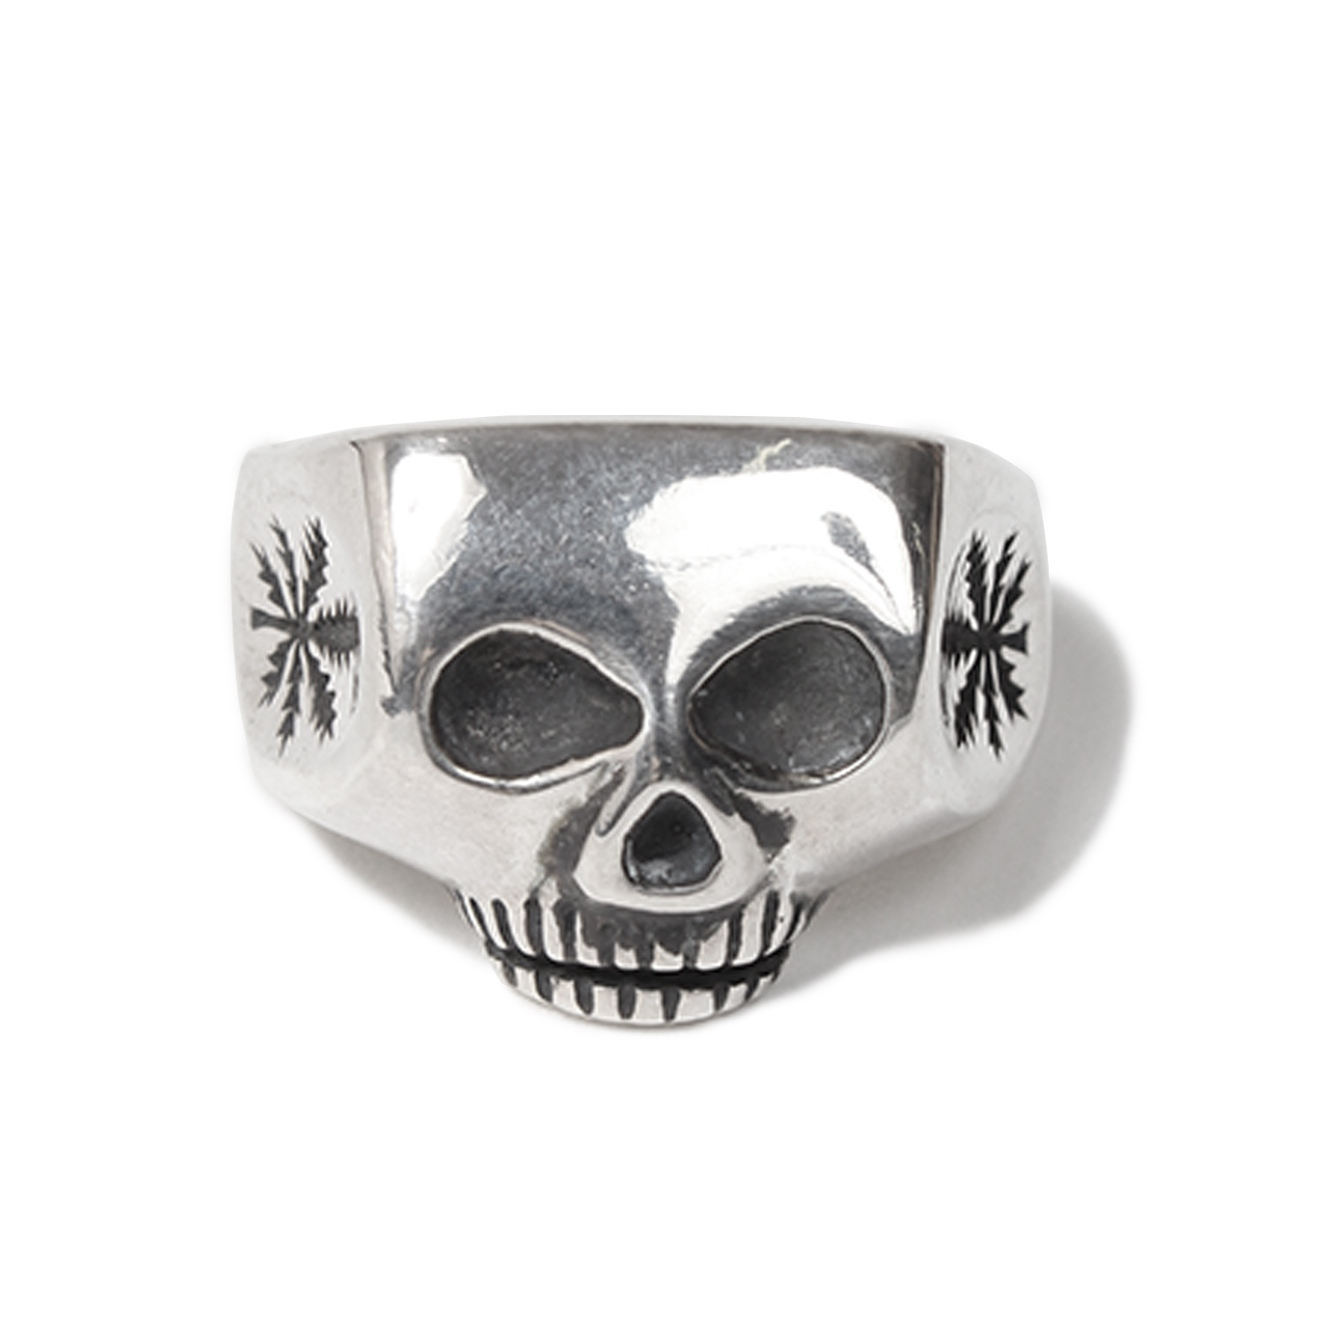 画像2: WACKO MARIA x FLASH POINT JIM SKULL RING WEED (TYPE-1)